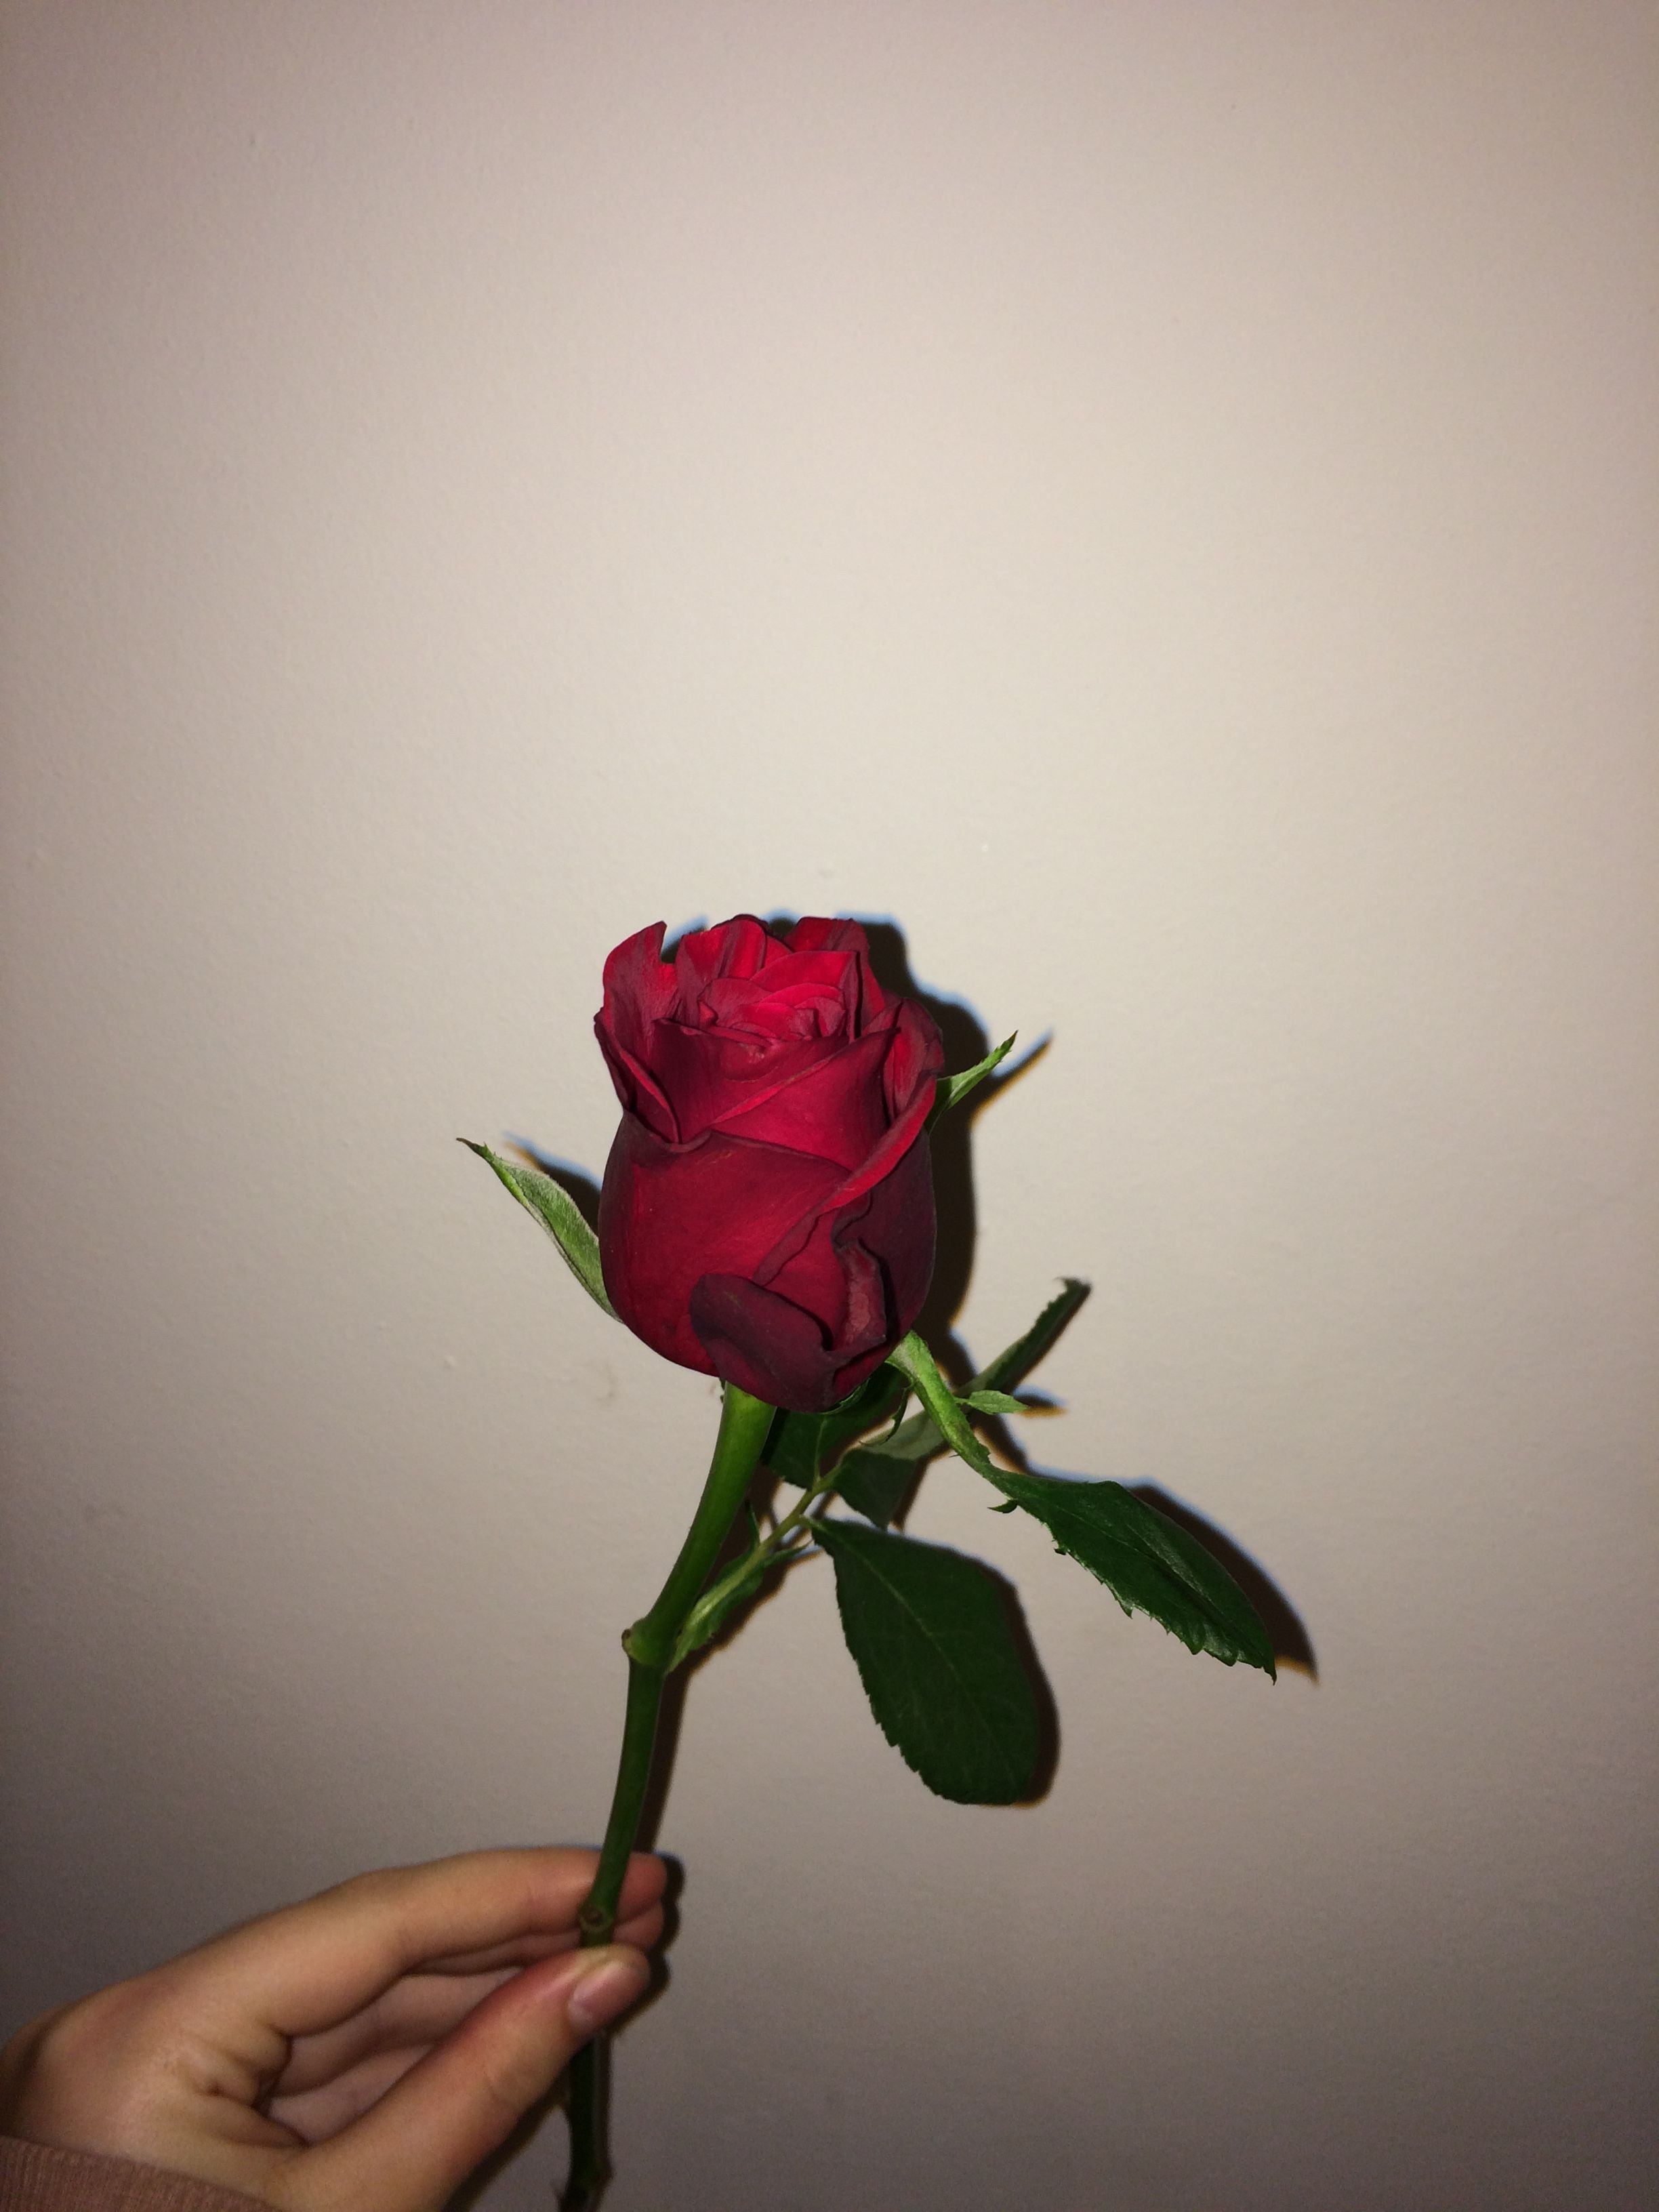 Pin By P On Aesthetic Pinterest Red Roses Rose Tumblr And Rose